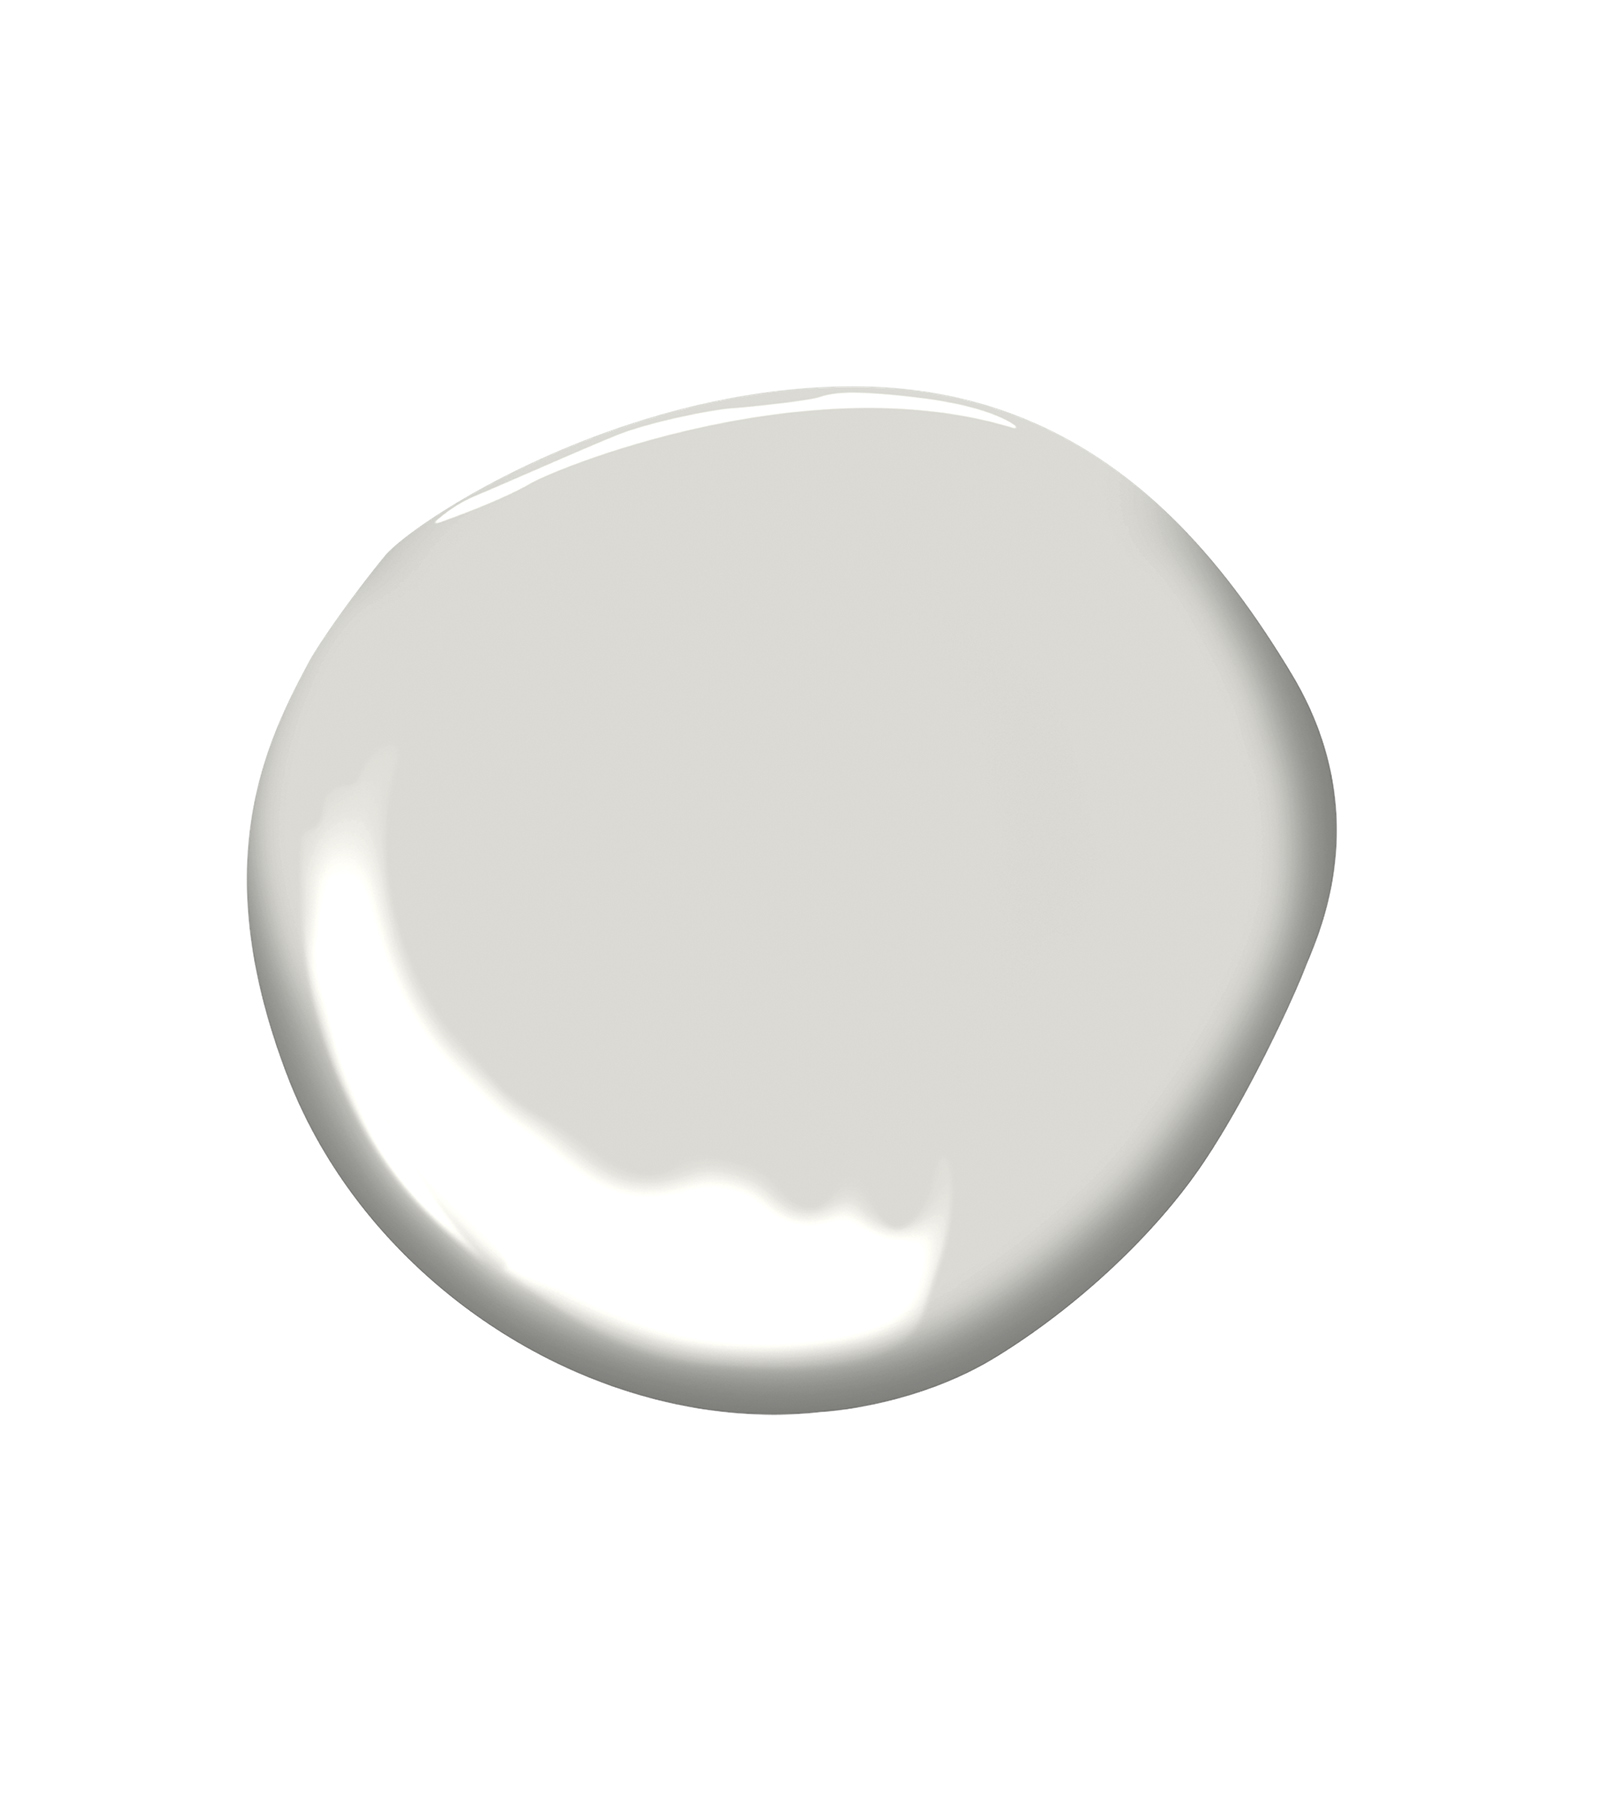 Shoreline by Benjamin Moore